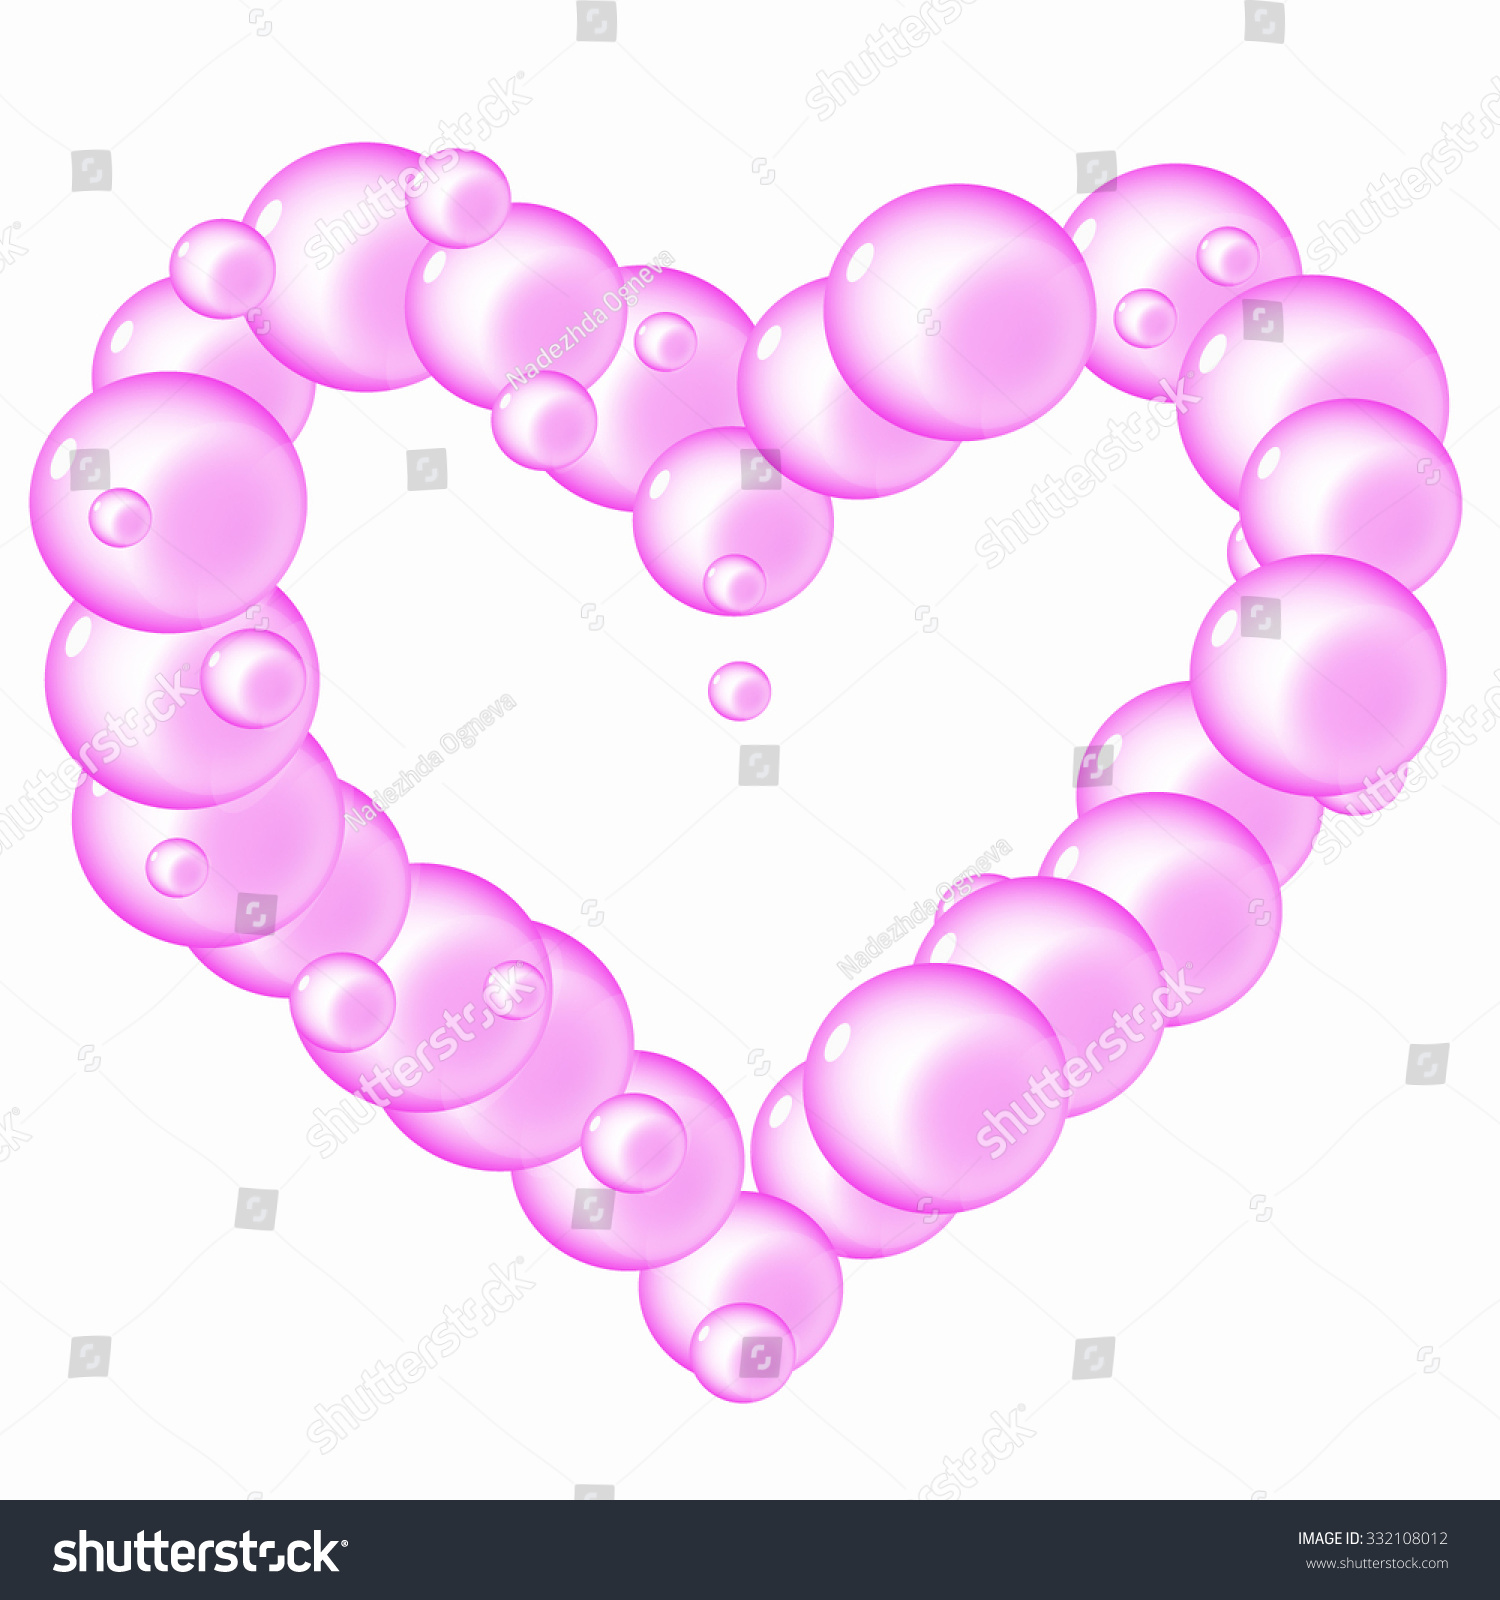 Translucent Soap Bubbles Flying Pink Heart Stock Photo (Photo ...